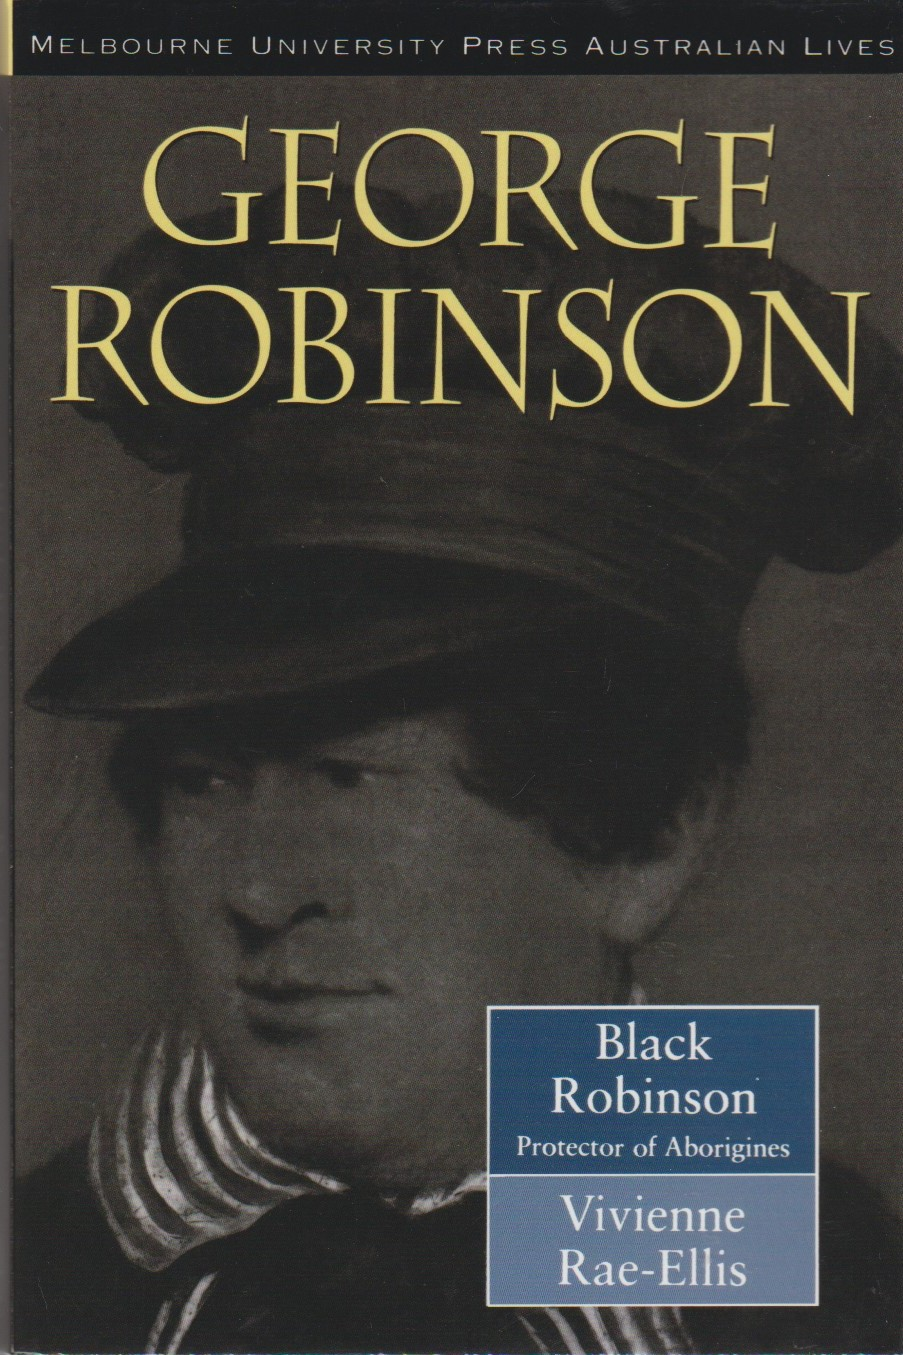 Black Robinson - George Robinson - Protector of Aborigines